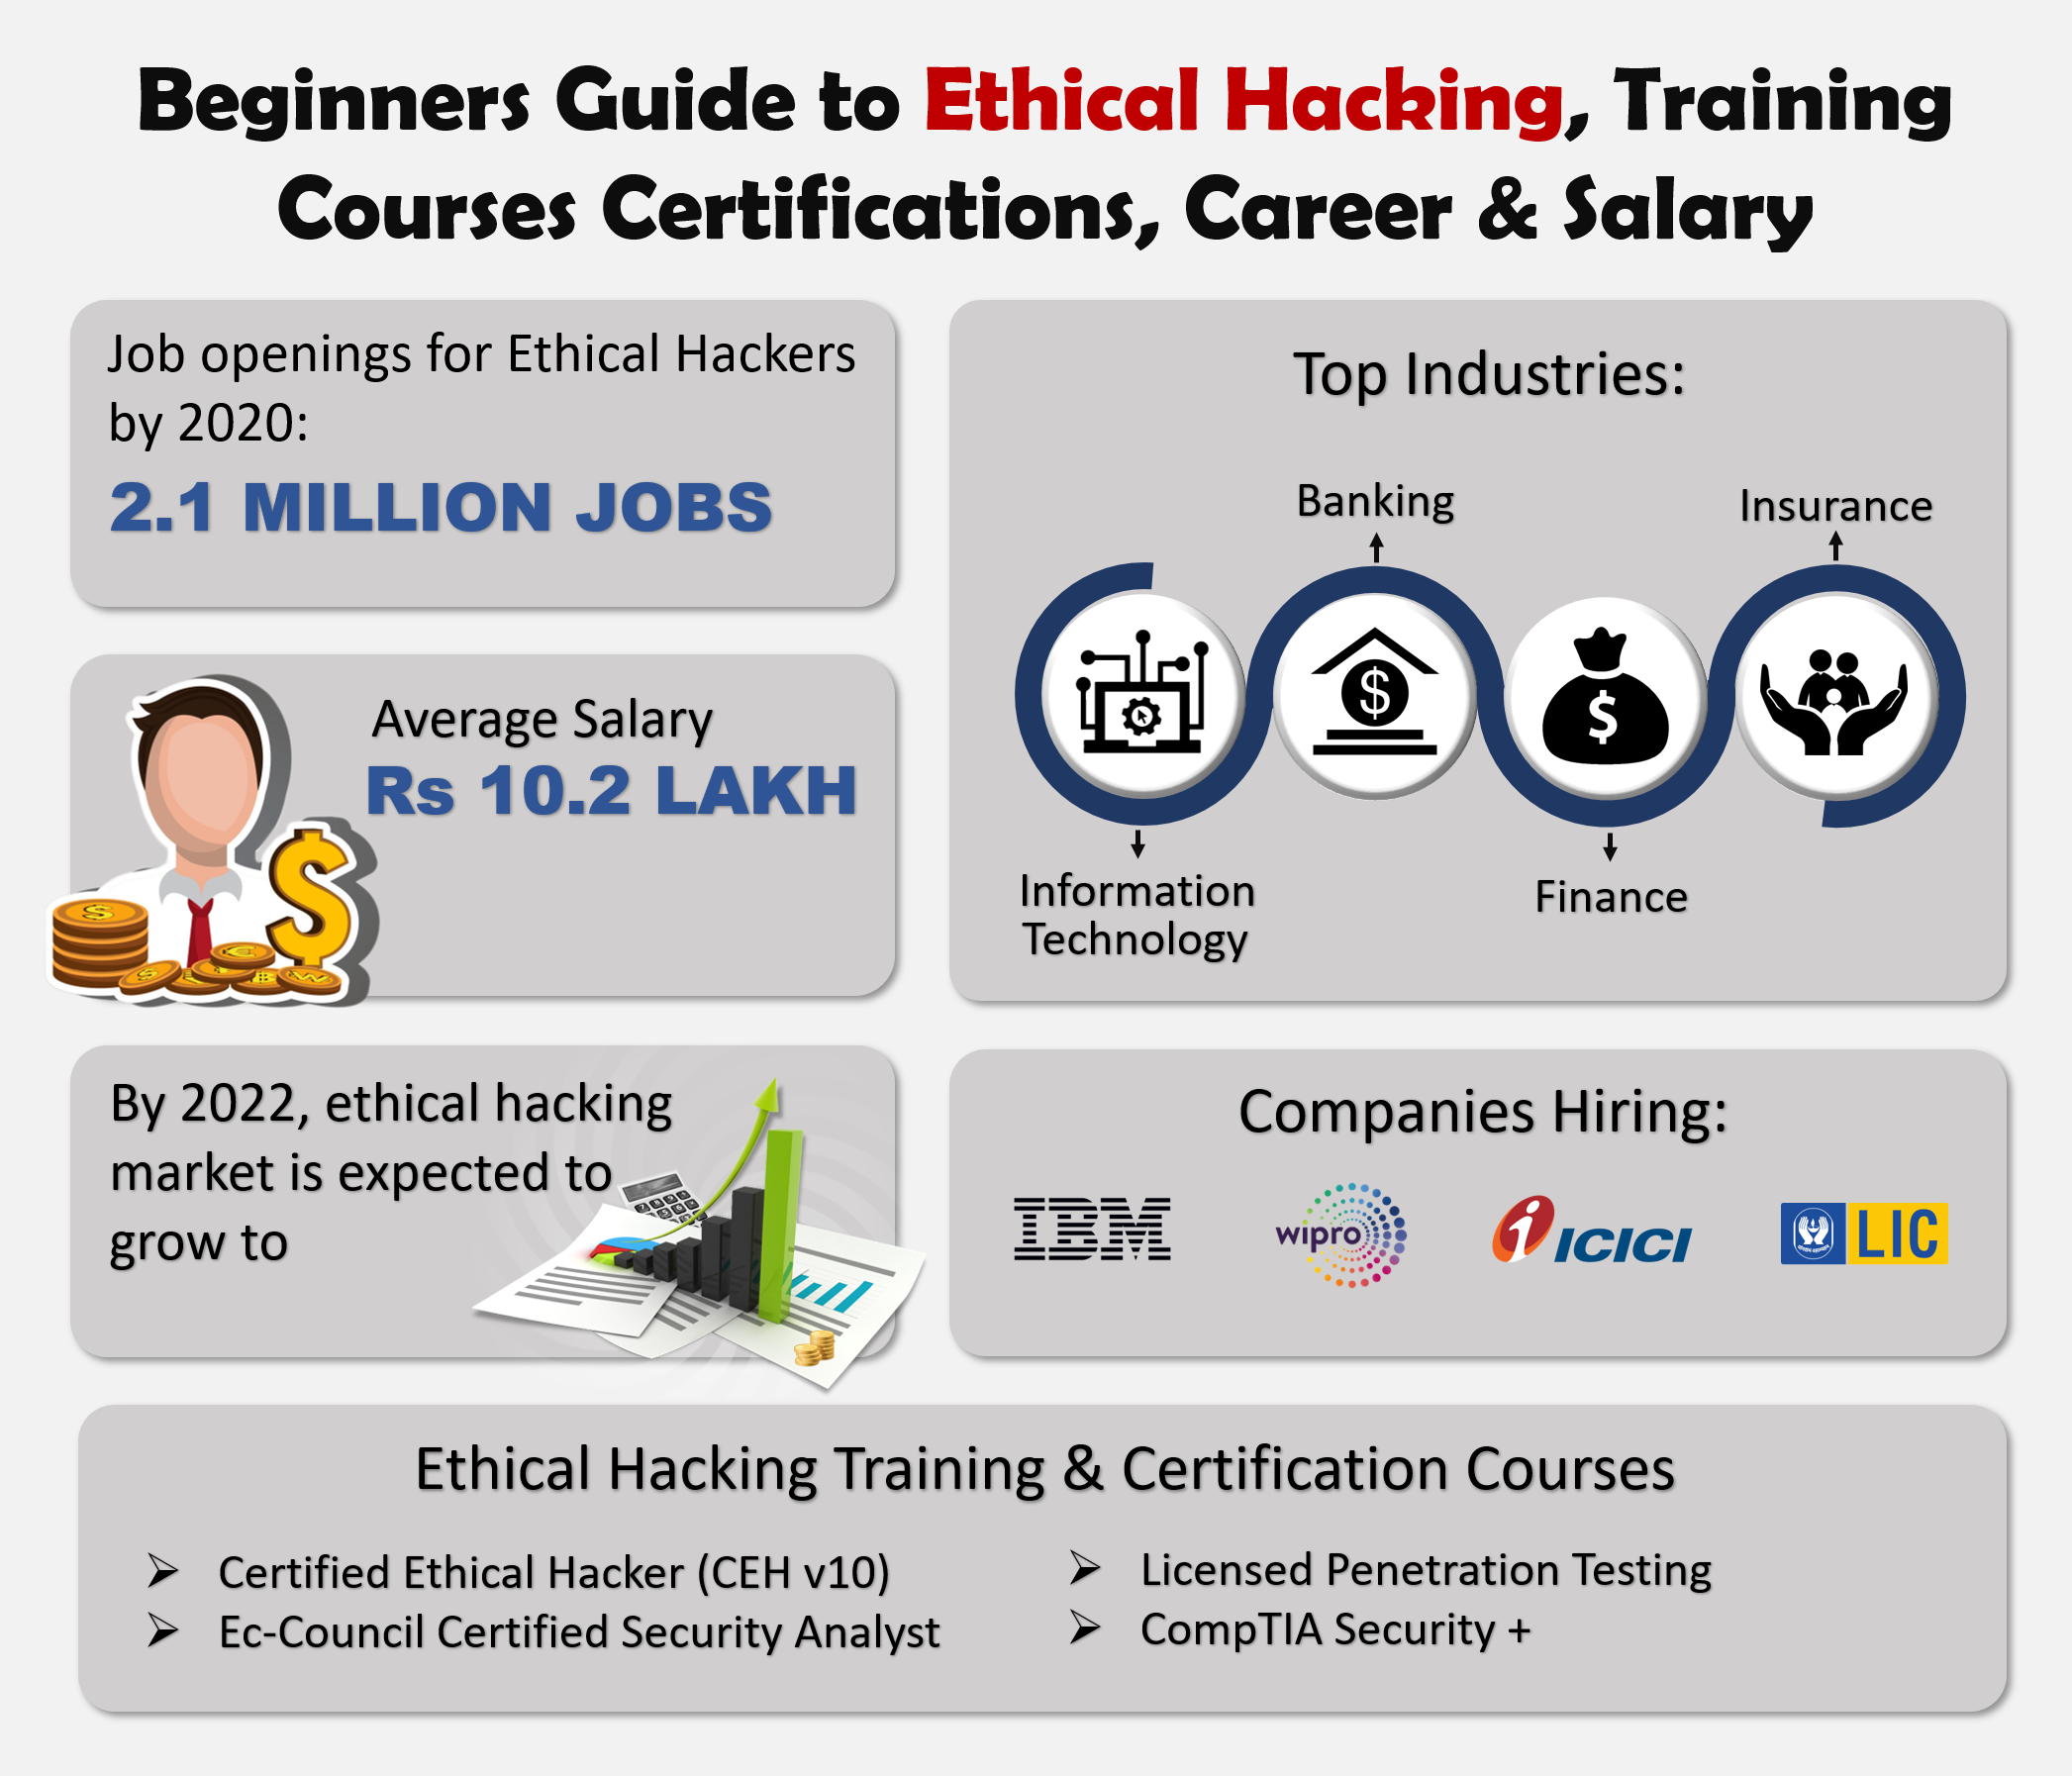 Beginners Guide To Ethical Hacking Training Courses Certification Career Salary Cyber Security Course Cyber Security Career Learn Hacking